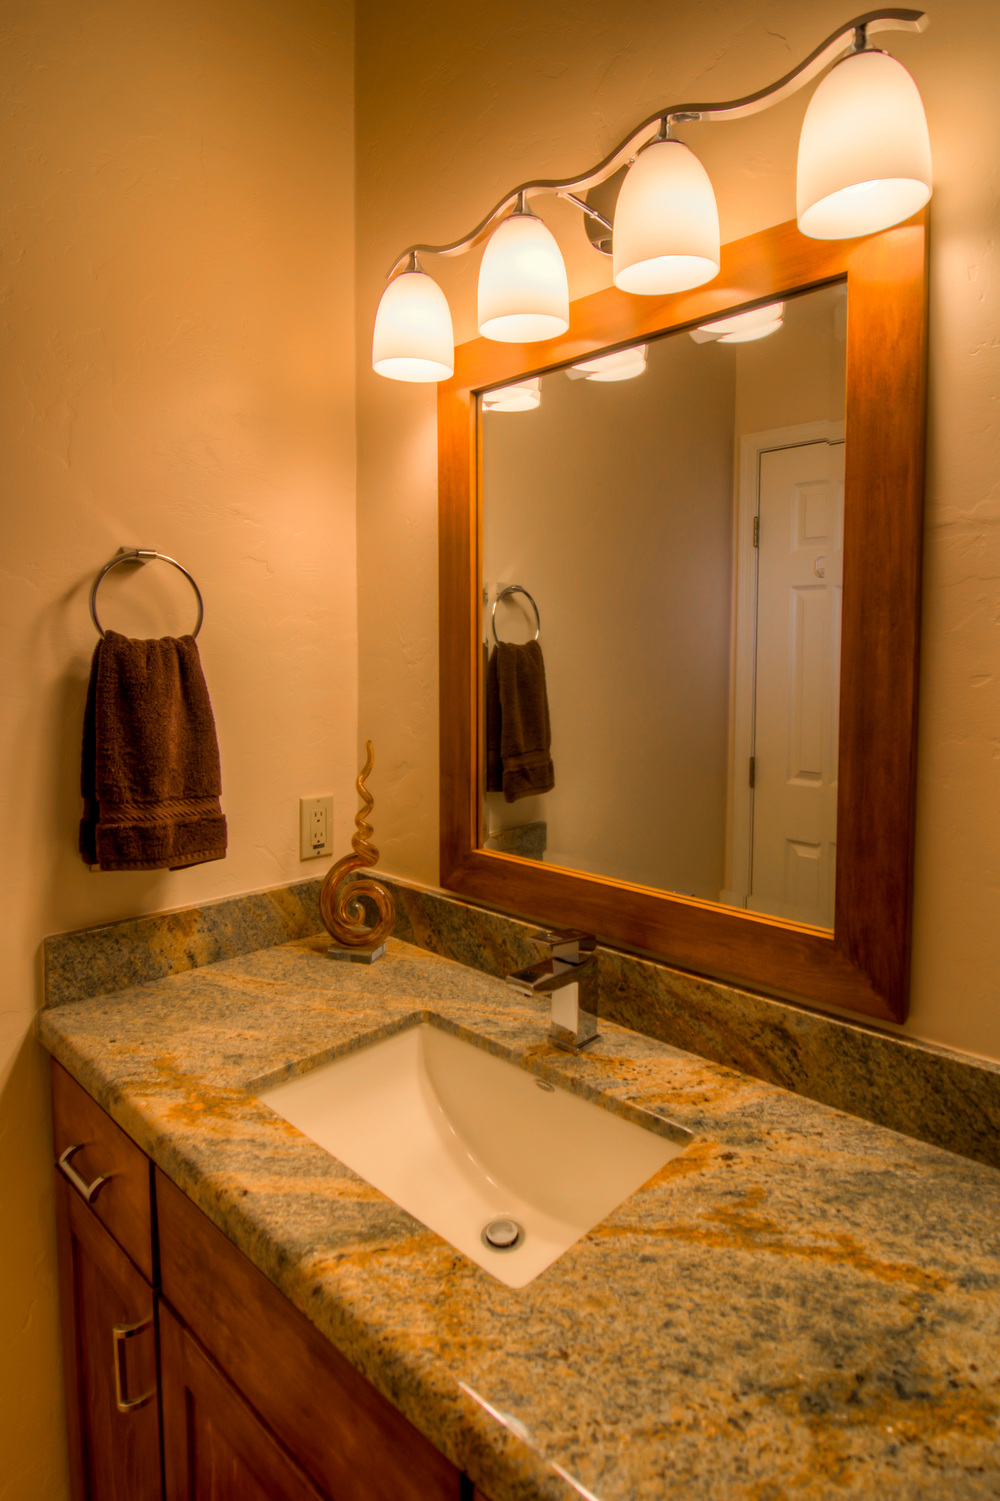 37 Bathroom 2 photo b.jpg